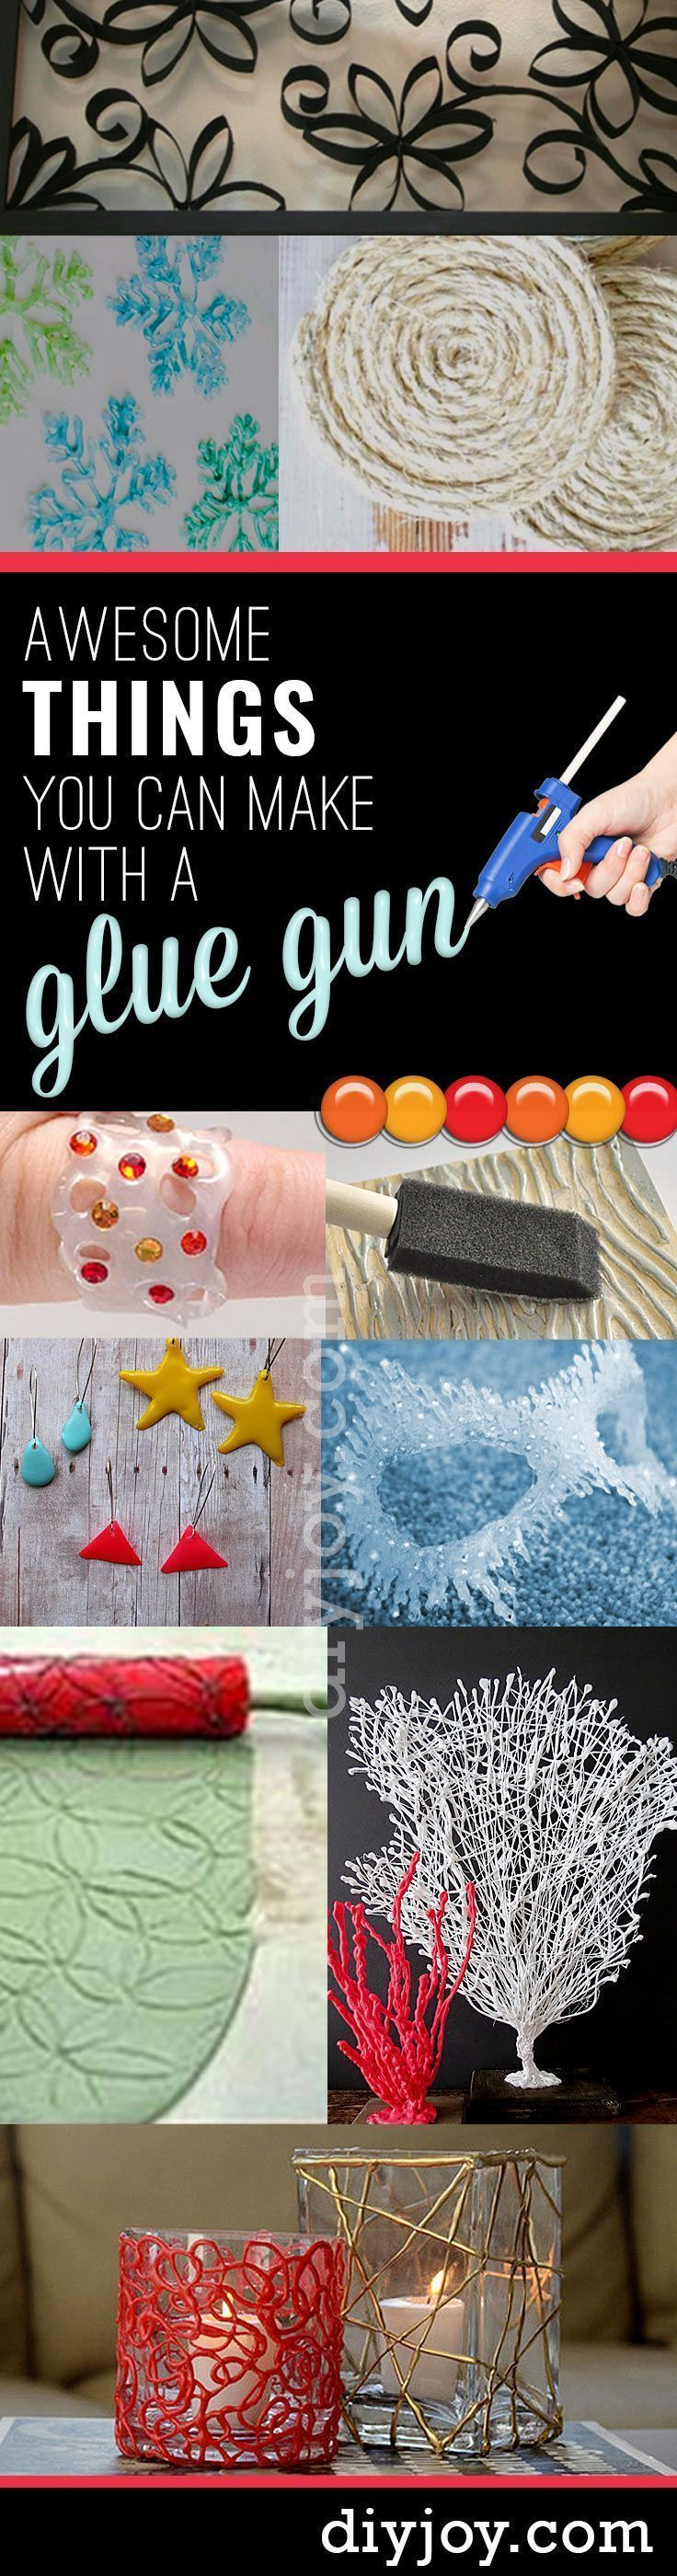 Unbelievably Cool Things You Can Make With A Glue Gun